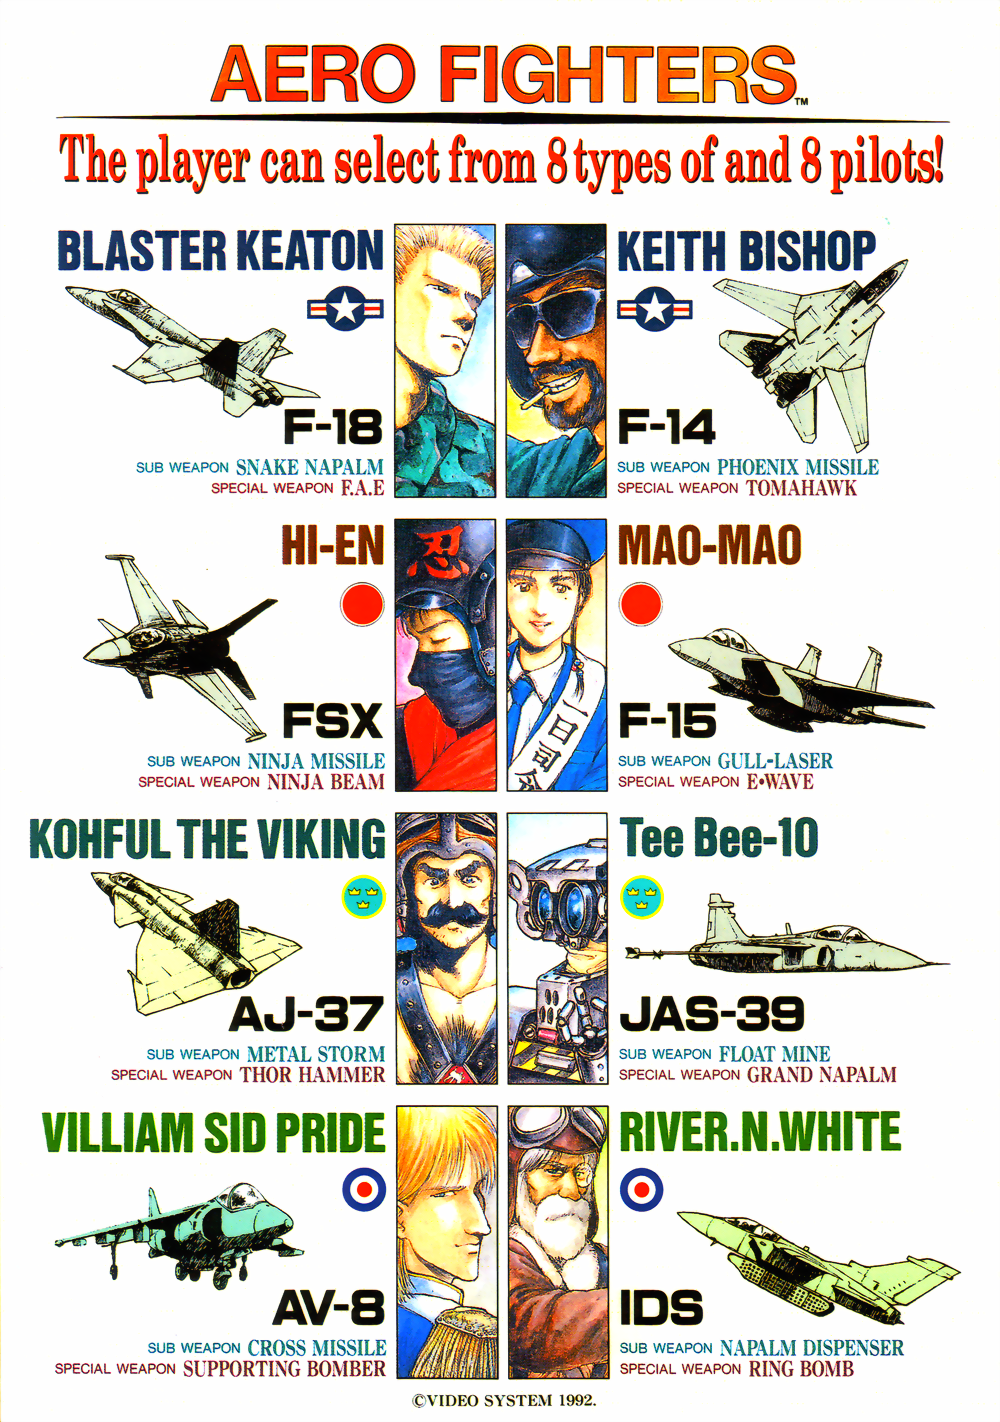 Aero Fighters (Taiwan / Japan, set 1) flyer